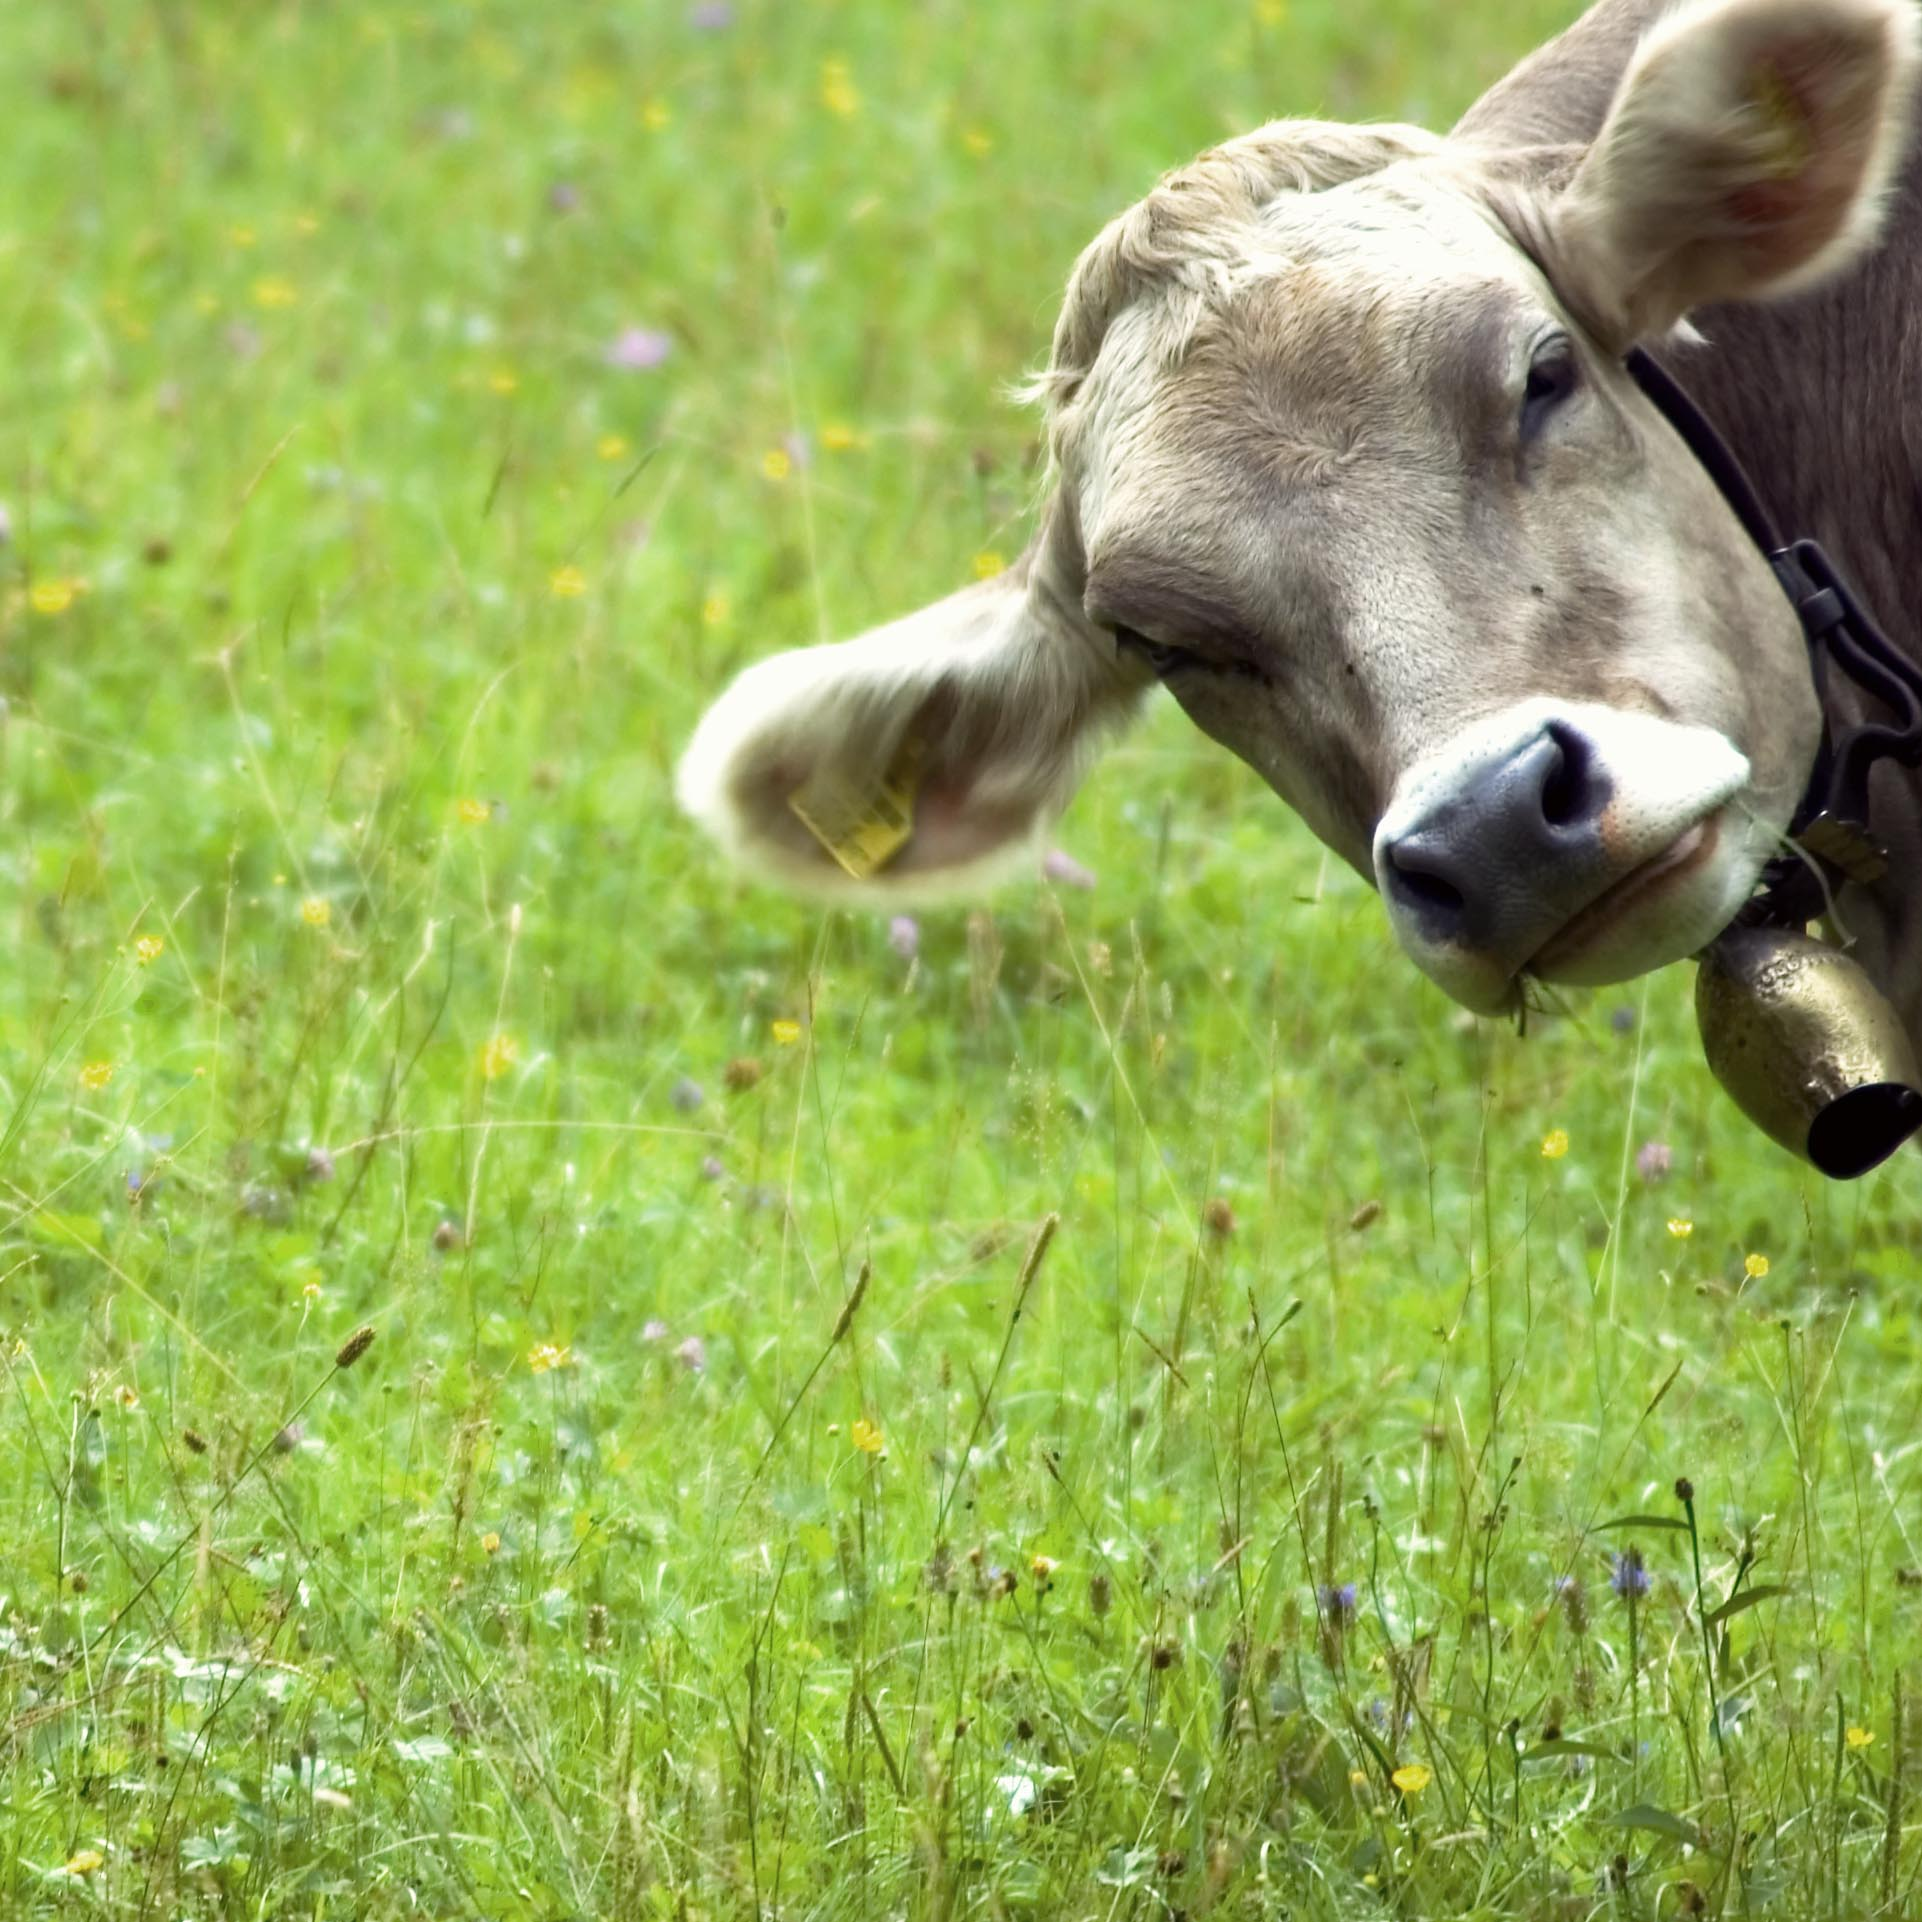 Grass Fed Cows Produce Superior Whey Proteins